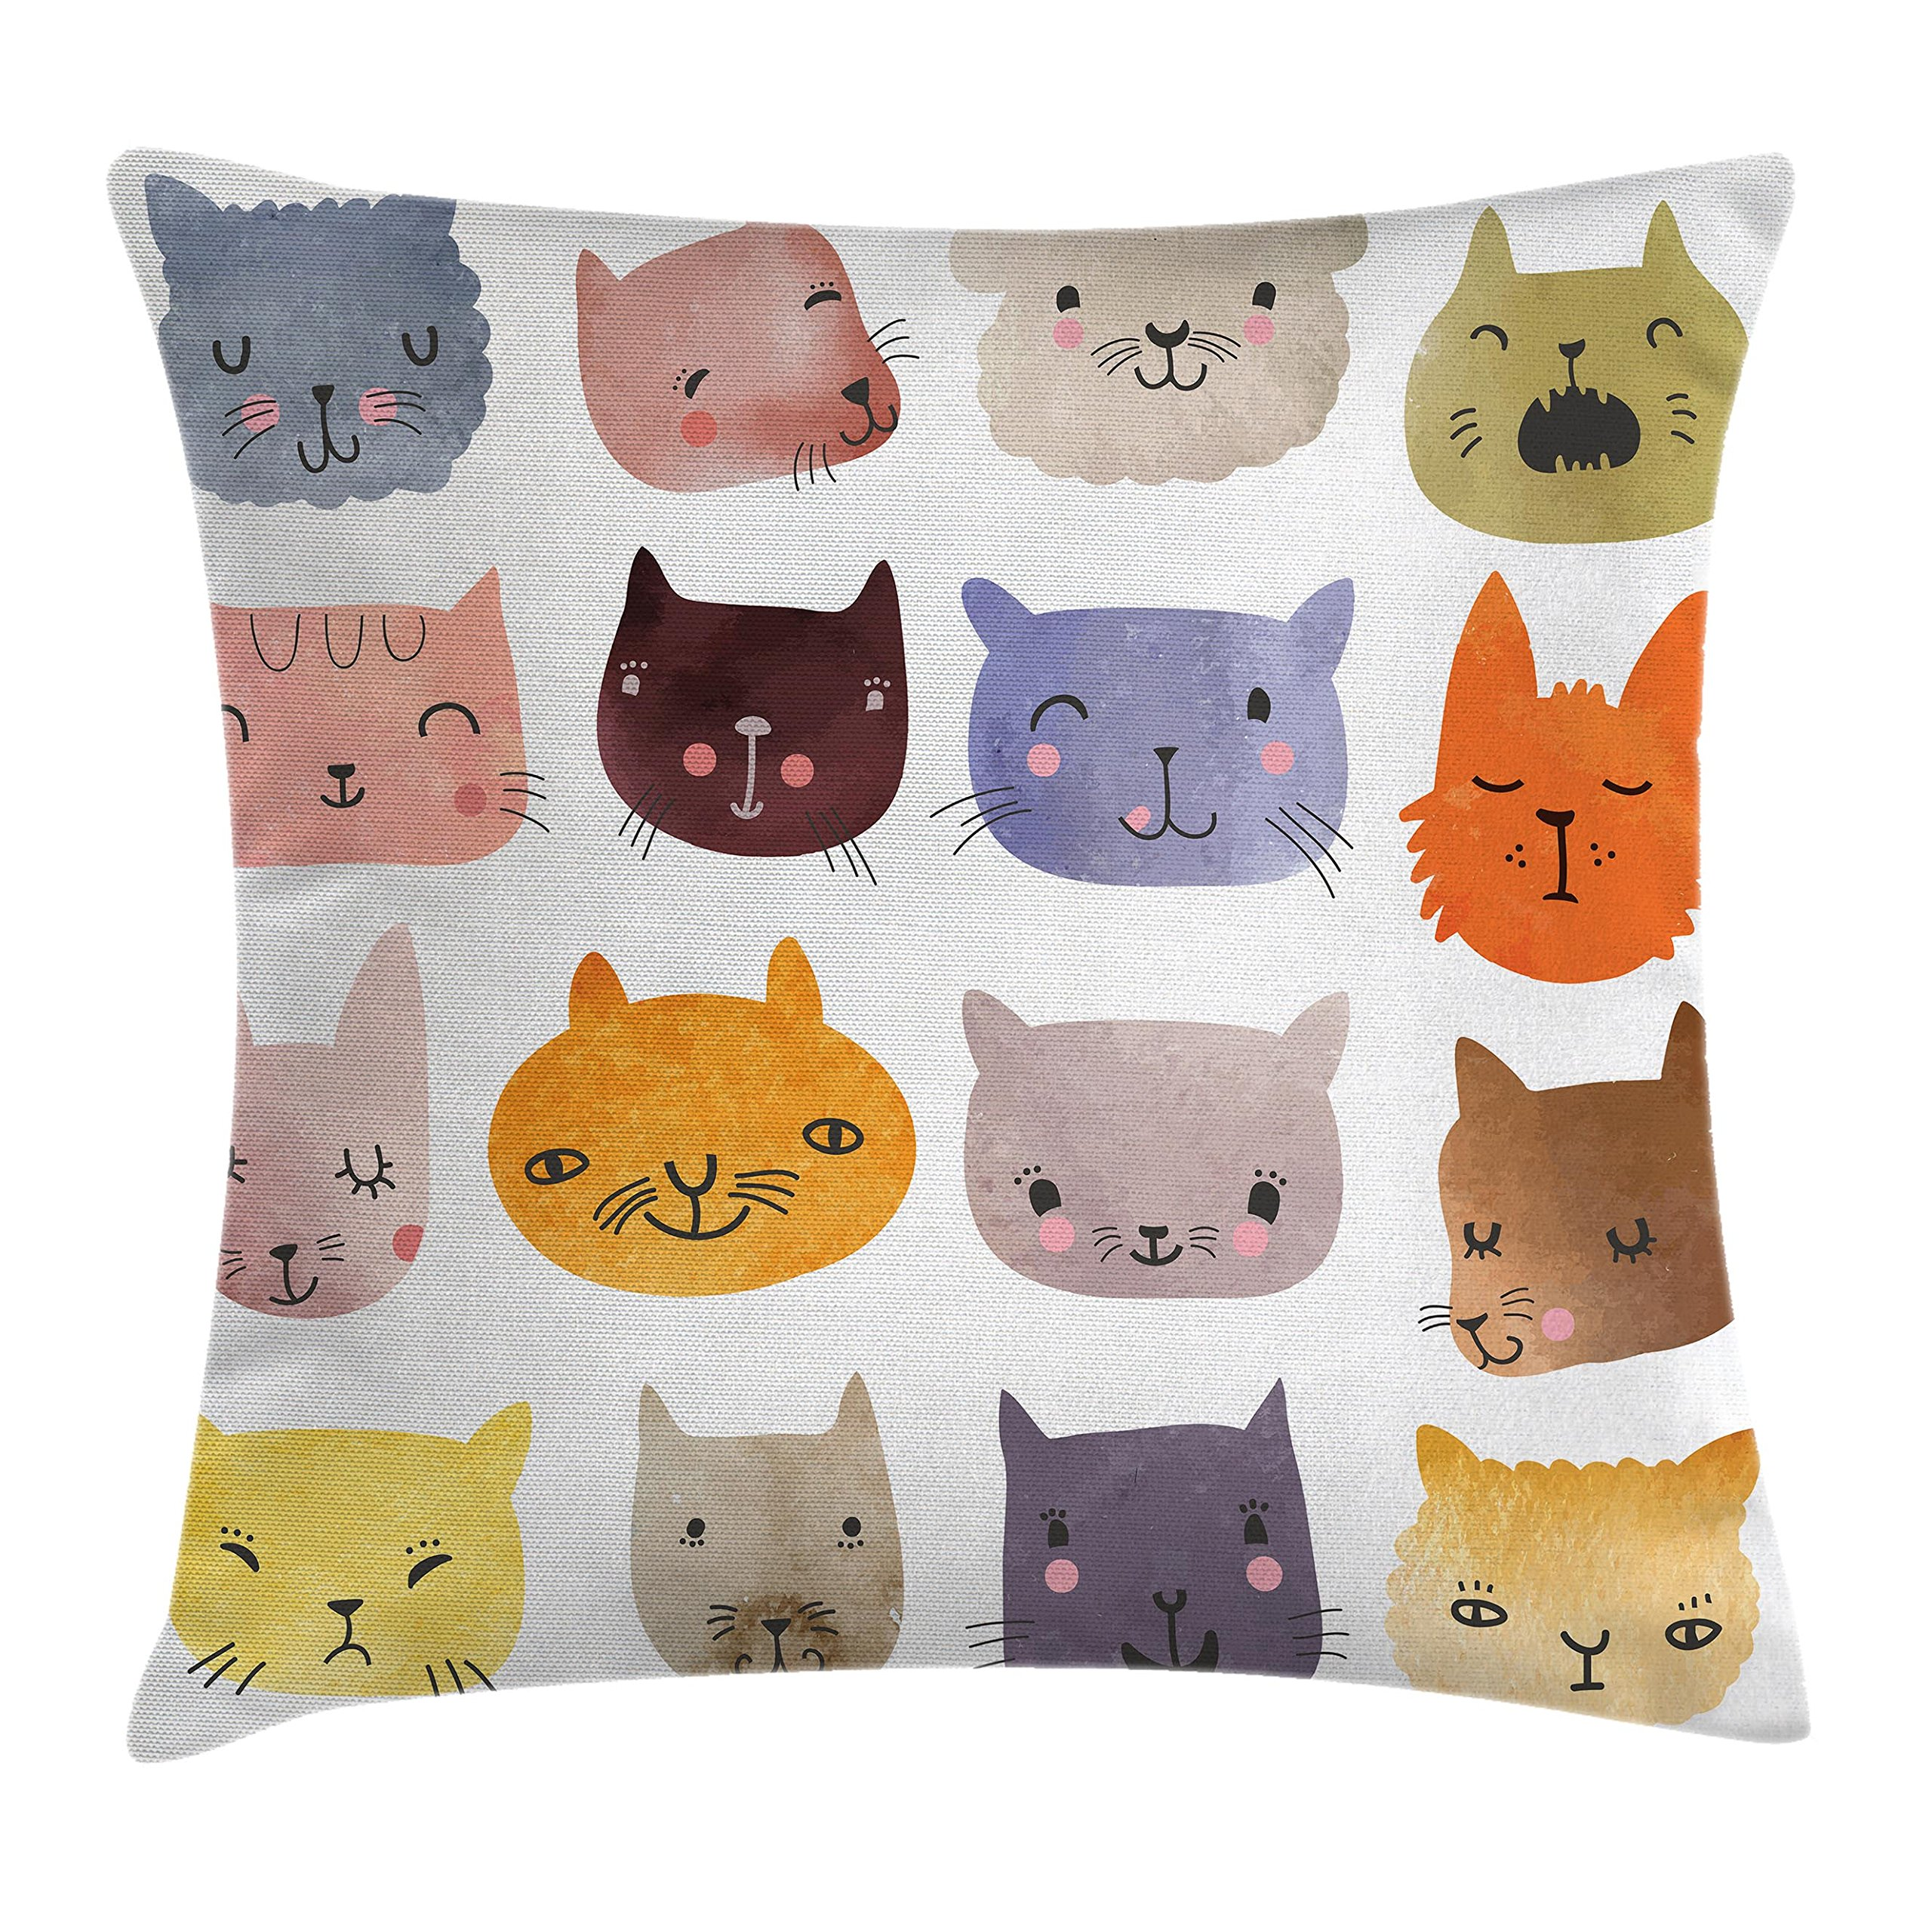 Ambesonne Cat Throw Pillow Cushion Cover, Cute Watercolor Effect Cat Heads in Colorful Humor Fun Purring Meow Animal Kids Artsy Print, Decorative Square Accent Pillow Case, 16 X 16 Inches, Multi by Ambesonne